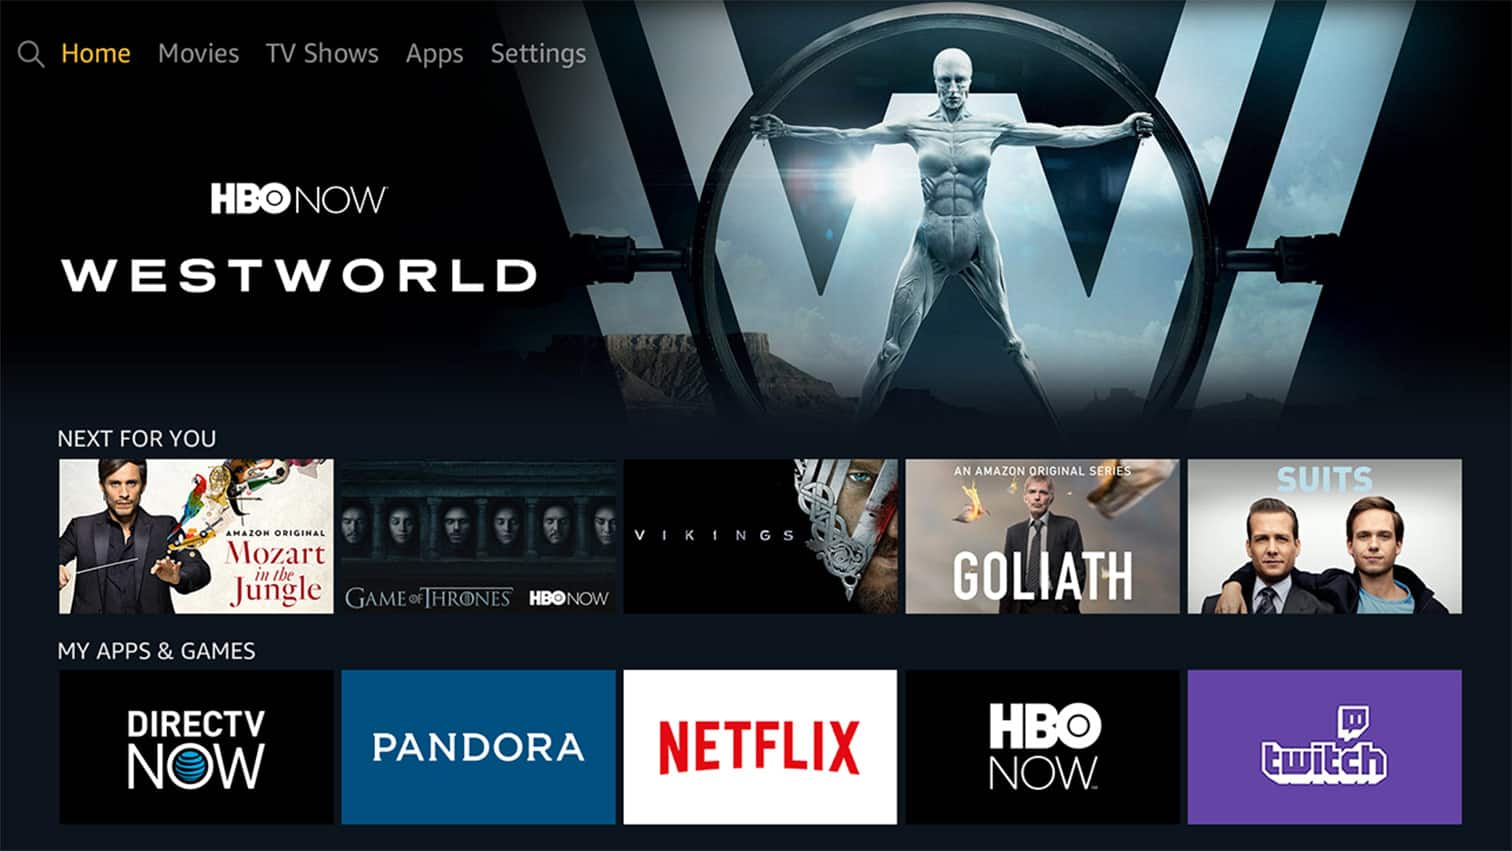 Directv Now Free Amazon Fire Stick With 1 Month Purchase